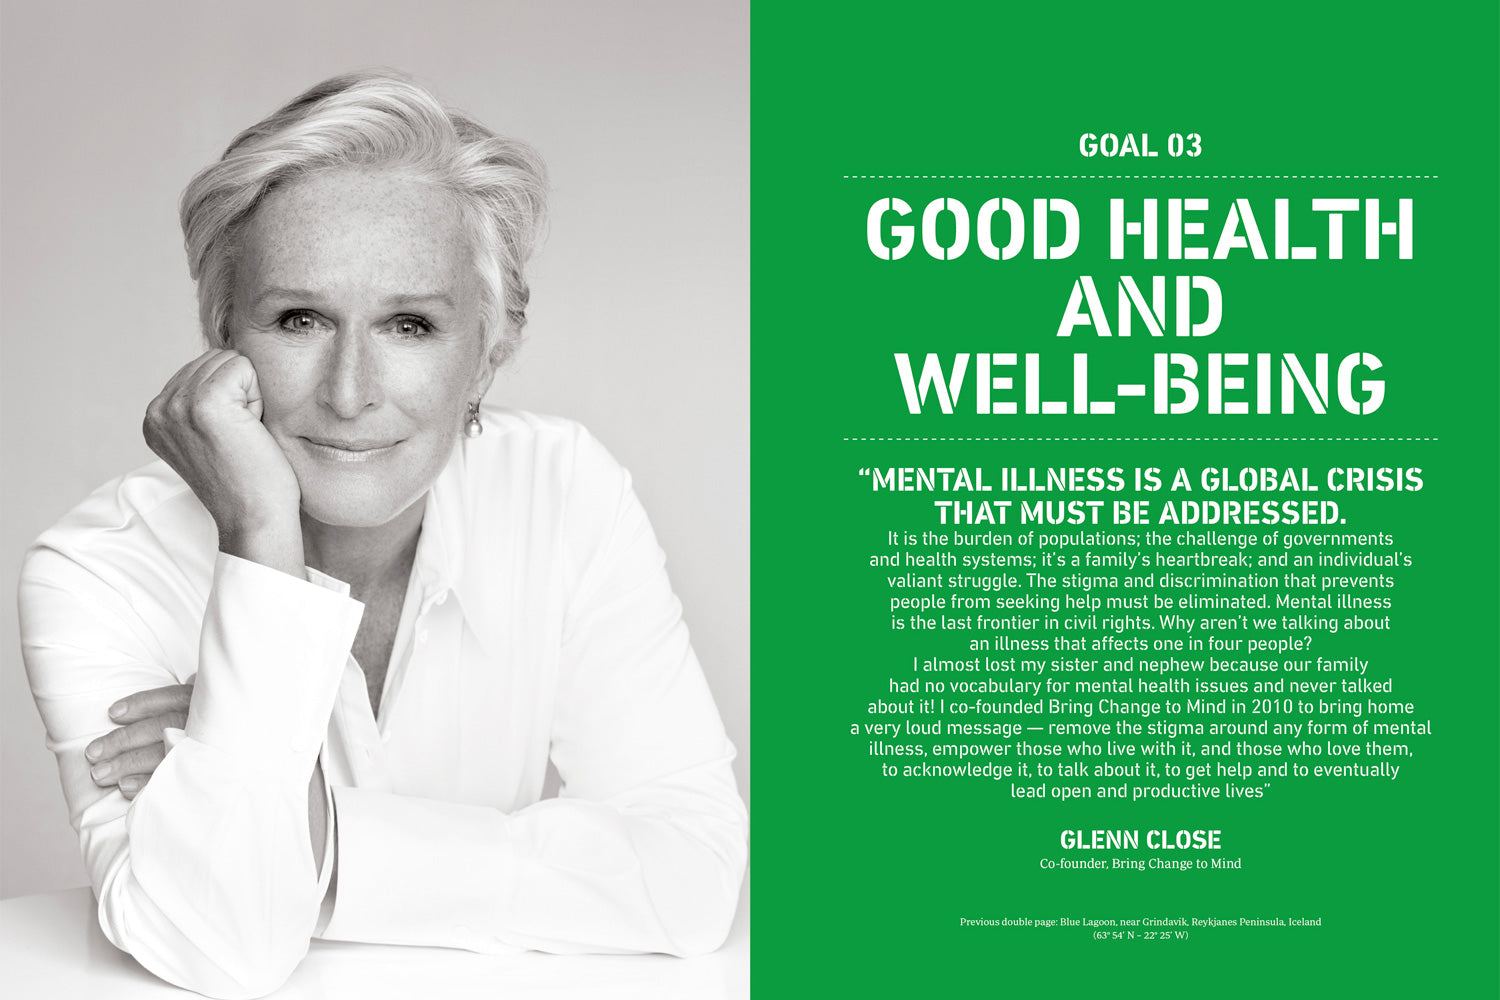 Text witten by Glenn Close of the Goal n°3 of the SDGs